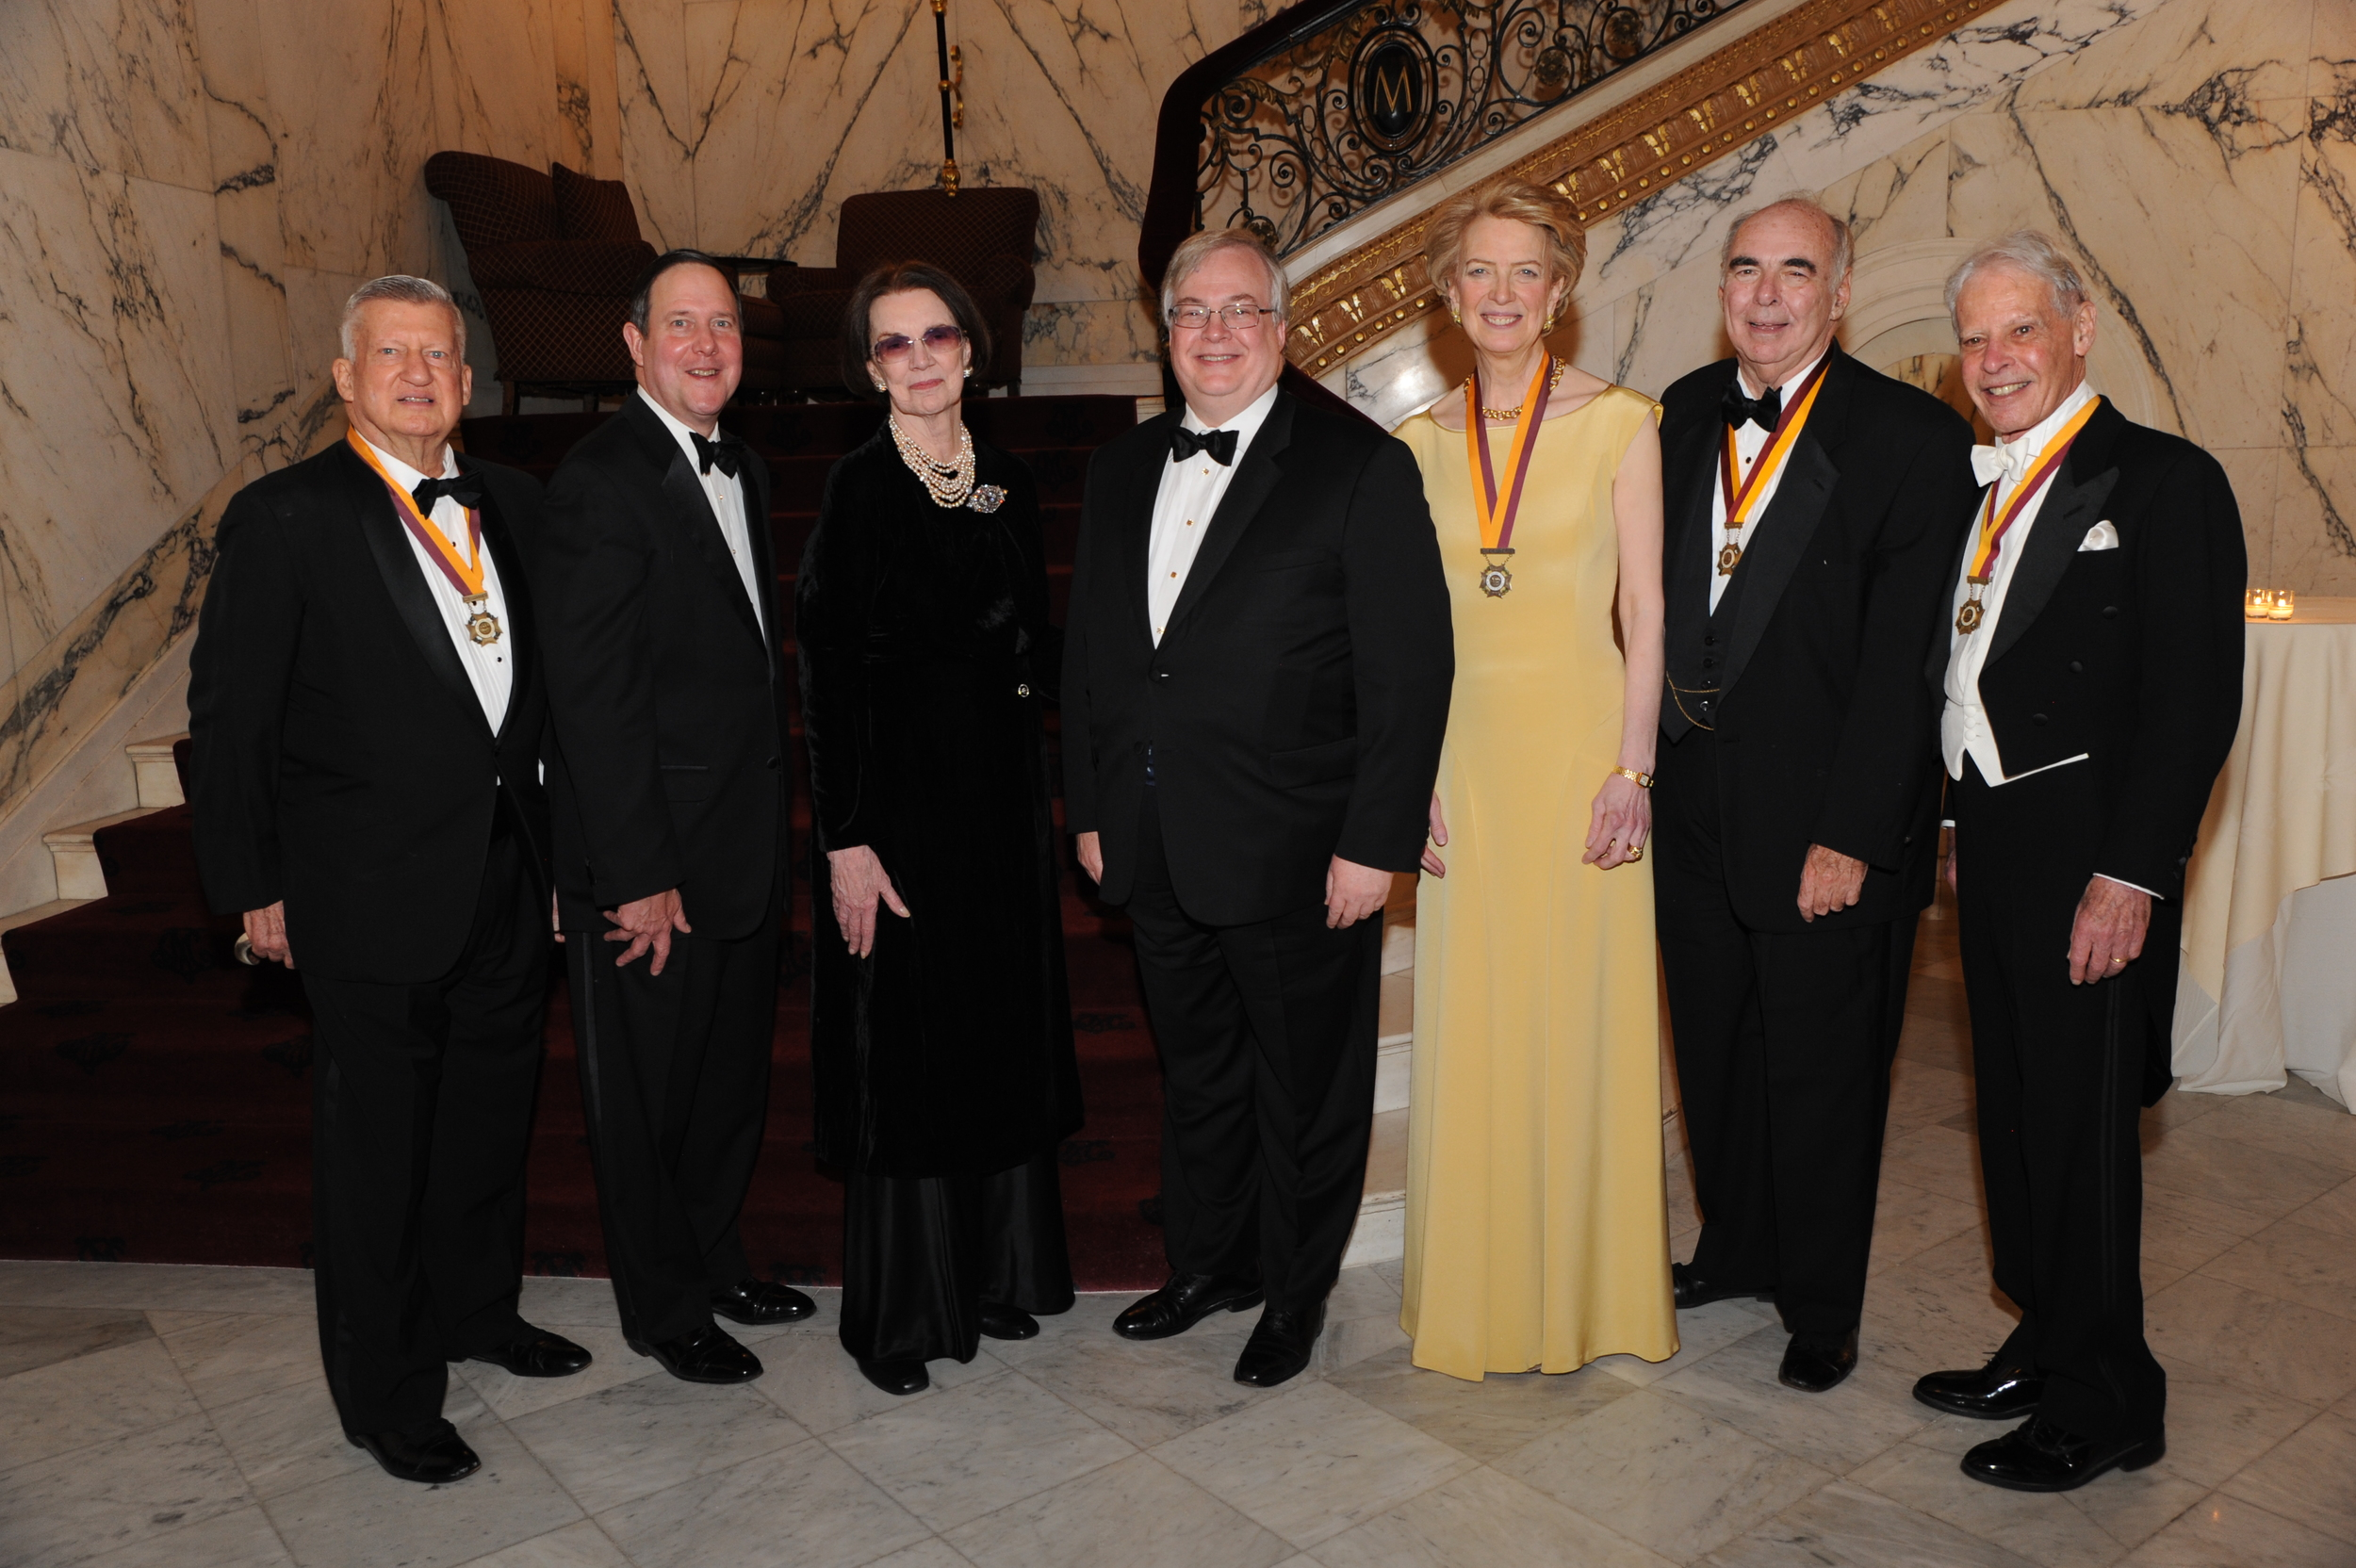 B_4164 -Tom Hills,Alan Frese, Connie Greenspan, NES President Anne Hall Elser, Scott Glascock, Doran Mullen,Arnold Neis.JPG